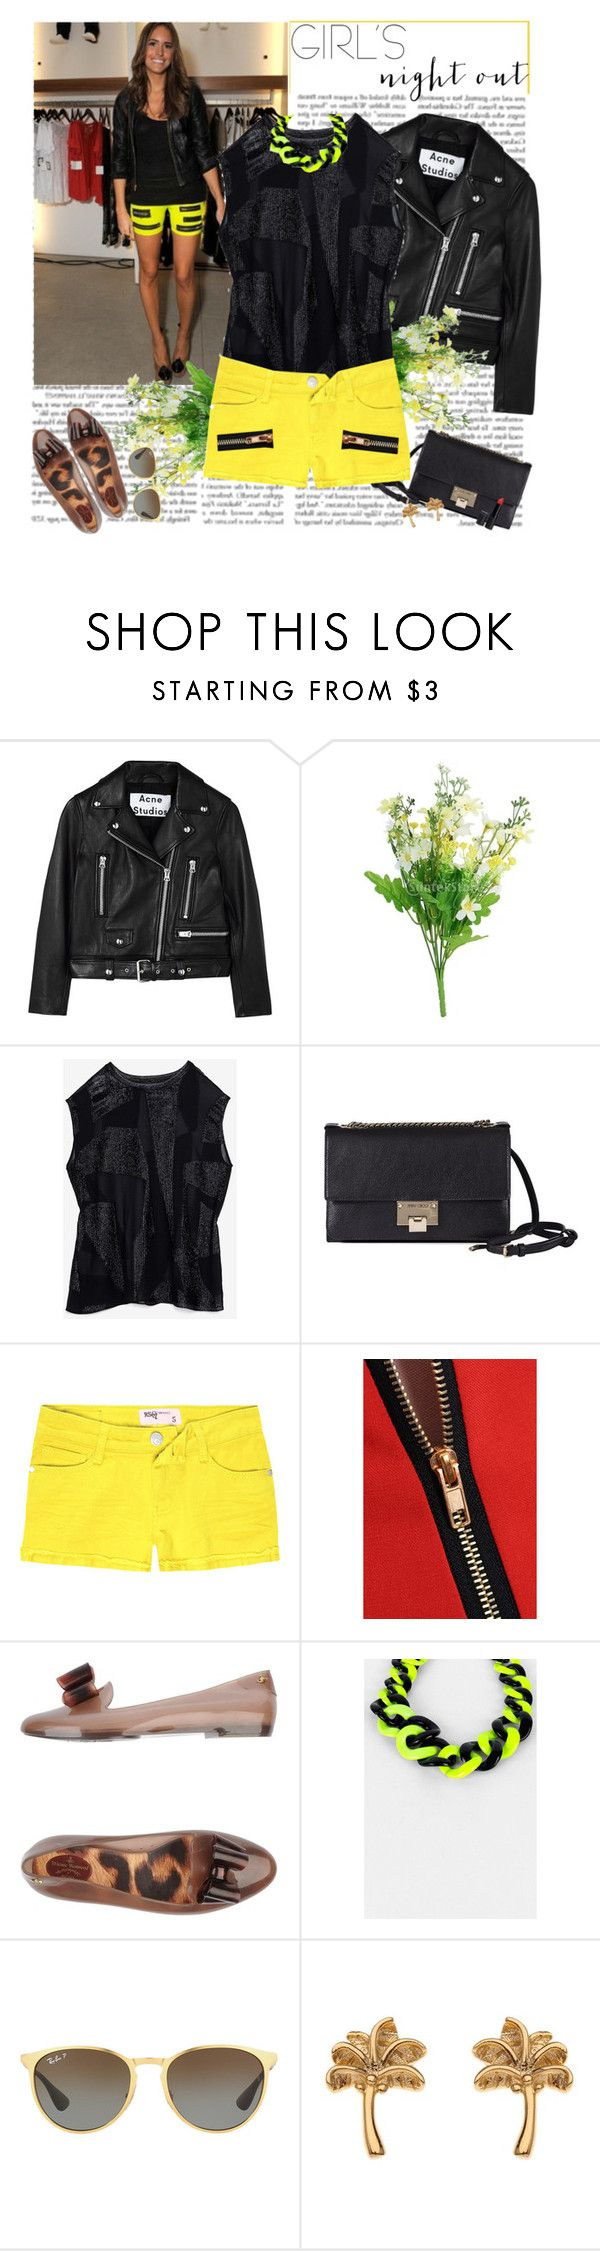 """night out summer edition"" by helena99 ❤ liked on Polyvore featuring Acne Studios, Helmut Lang, Jimmy Choo, RSQ, Vivienne Westwood Anglomania + Melissa, Ray-Ban, Topshop, New Look, shorts and flats"